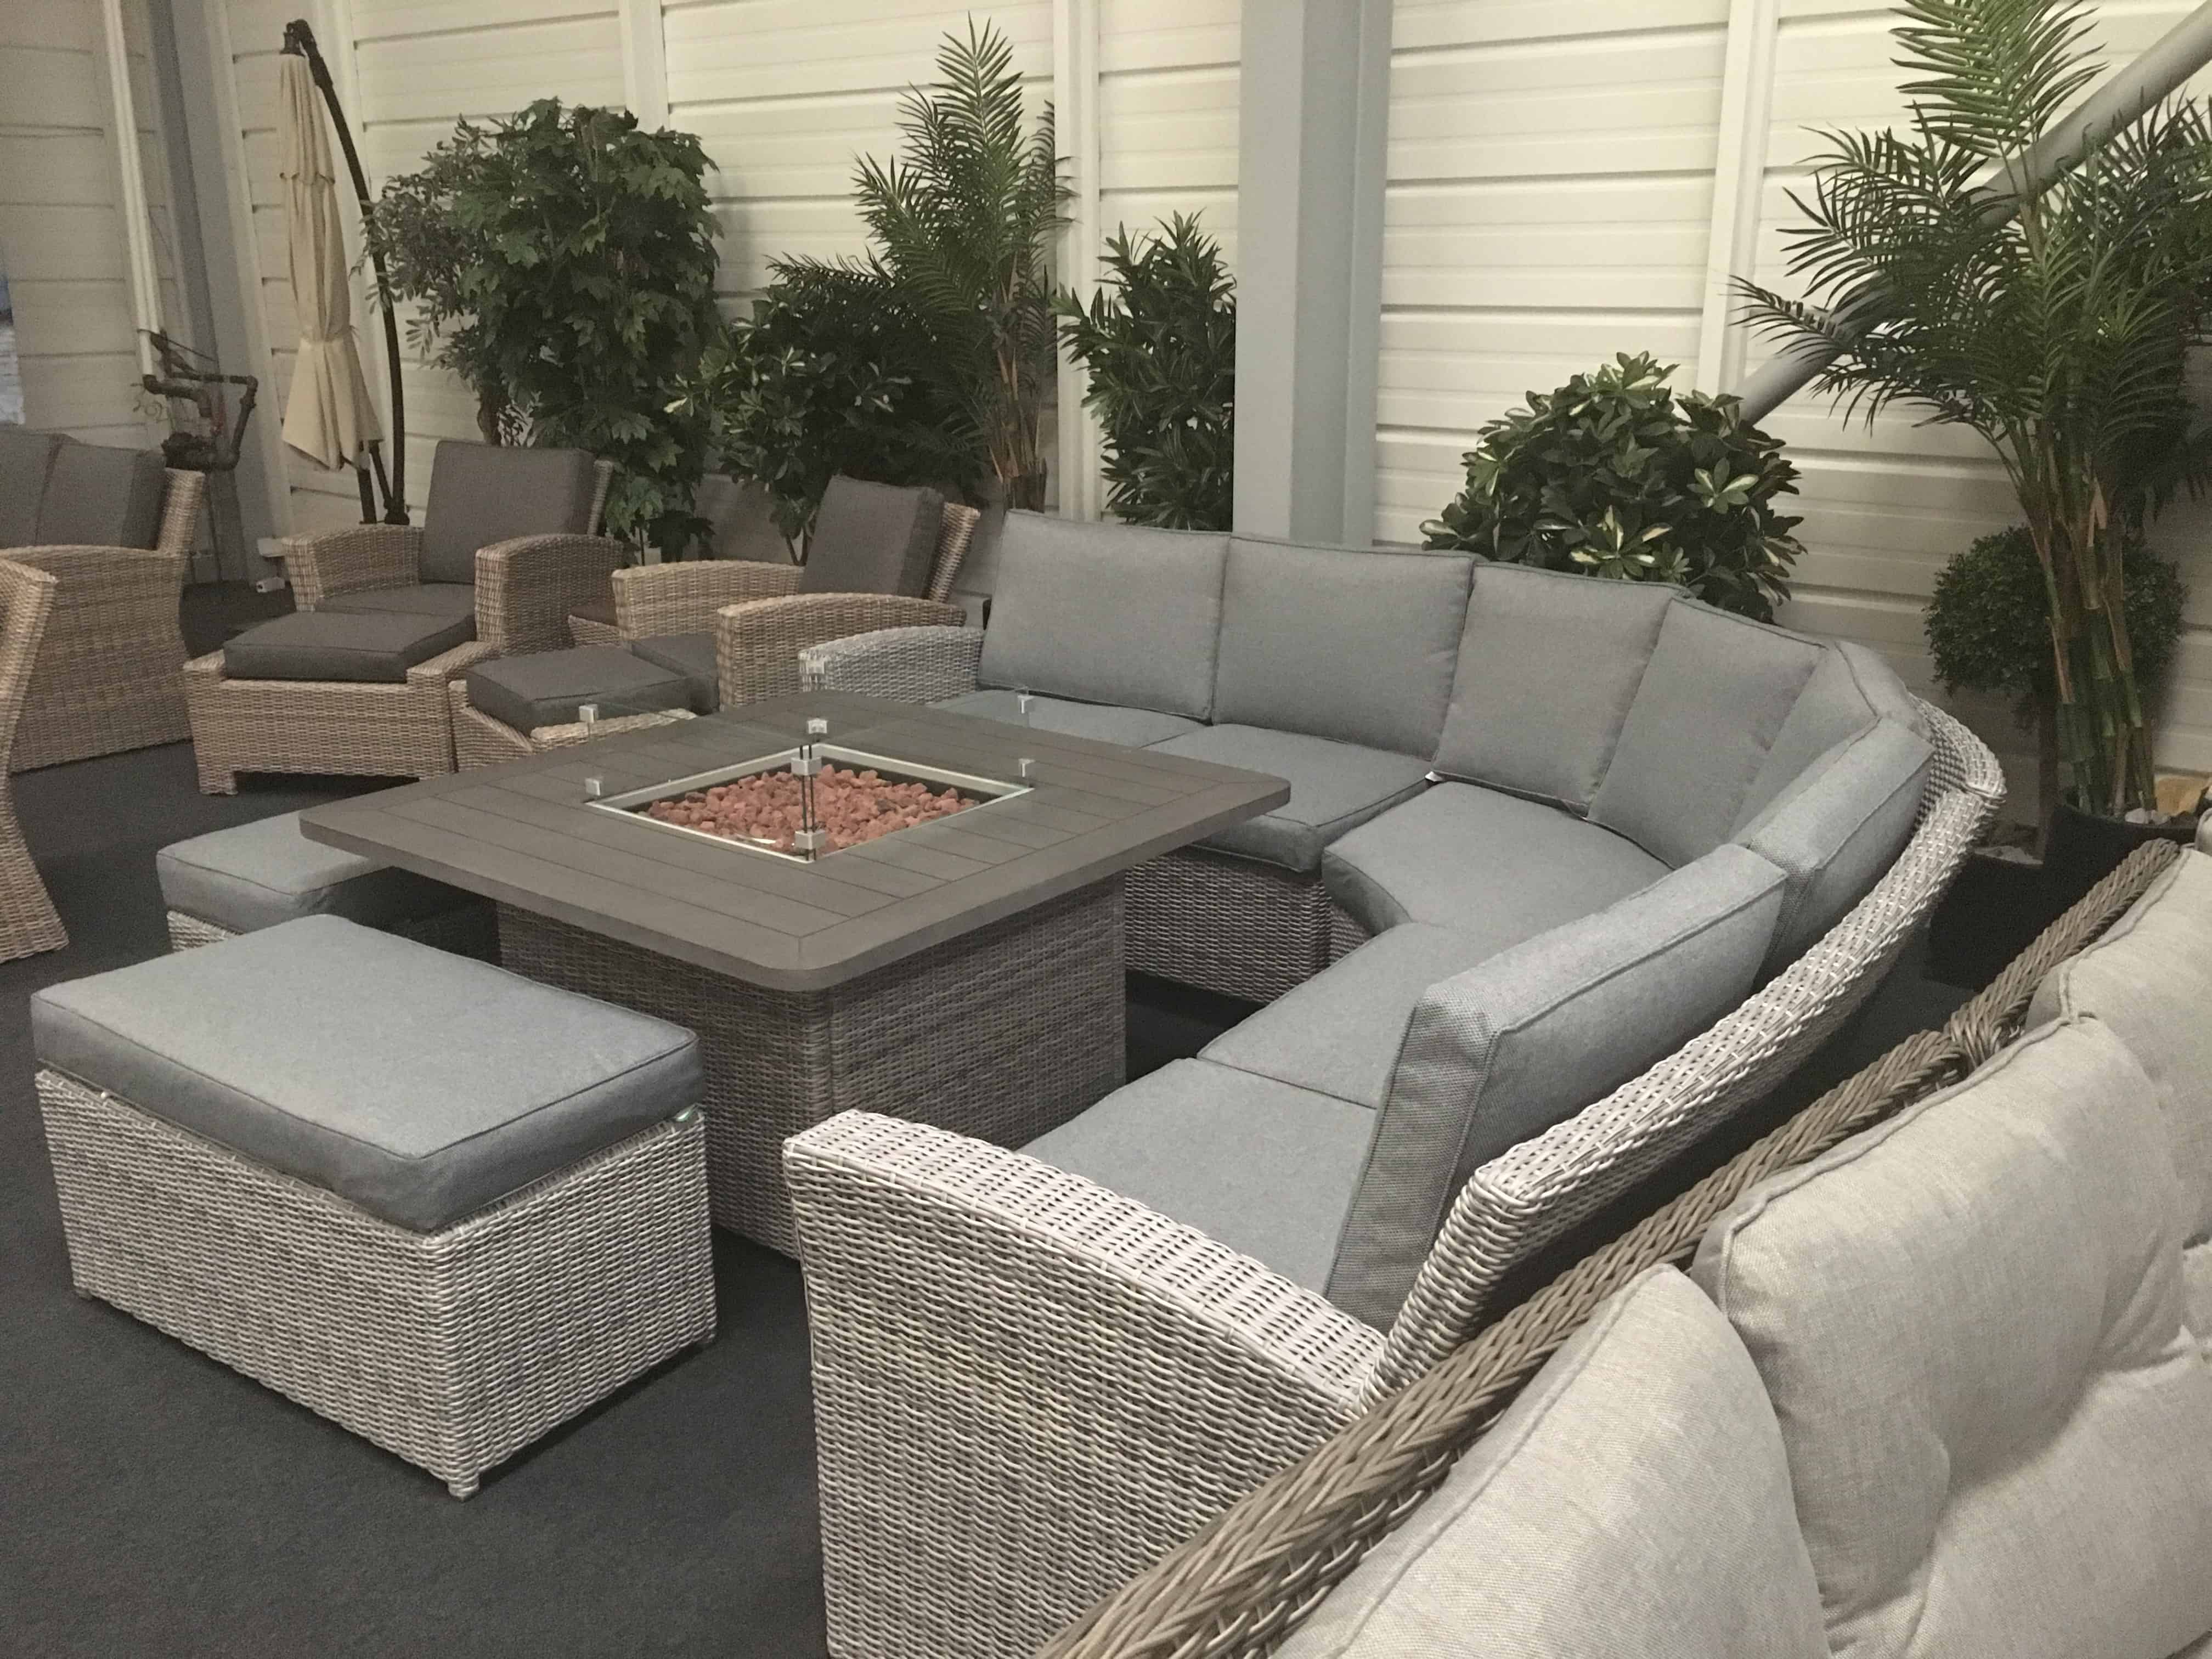 Carina Rattan Corner Set With Fire Pit Garden Furniture Garden Furniture Dining Sets Garden Sofa Sets And Lounging Garden Furniture Barbecues Outdoor Ie